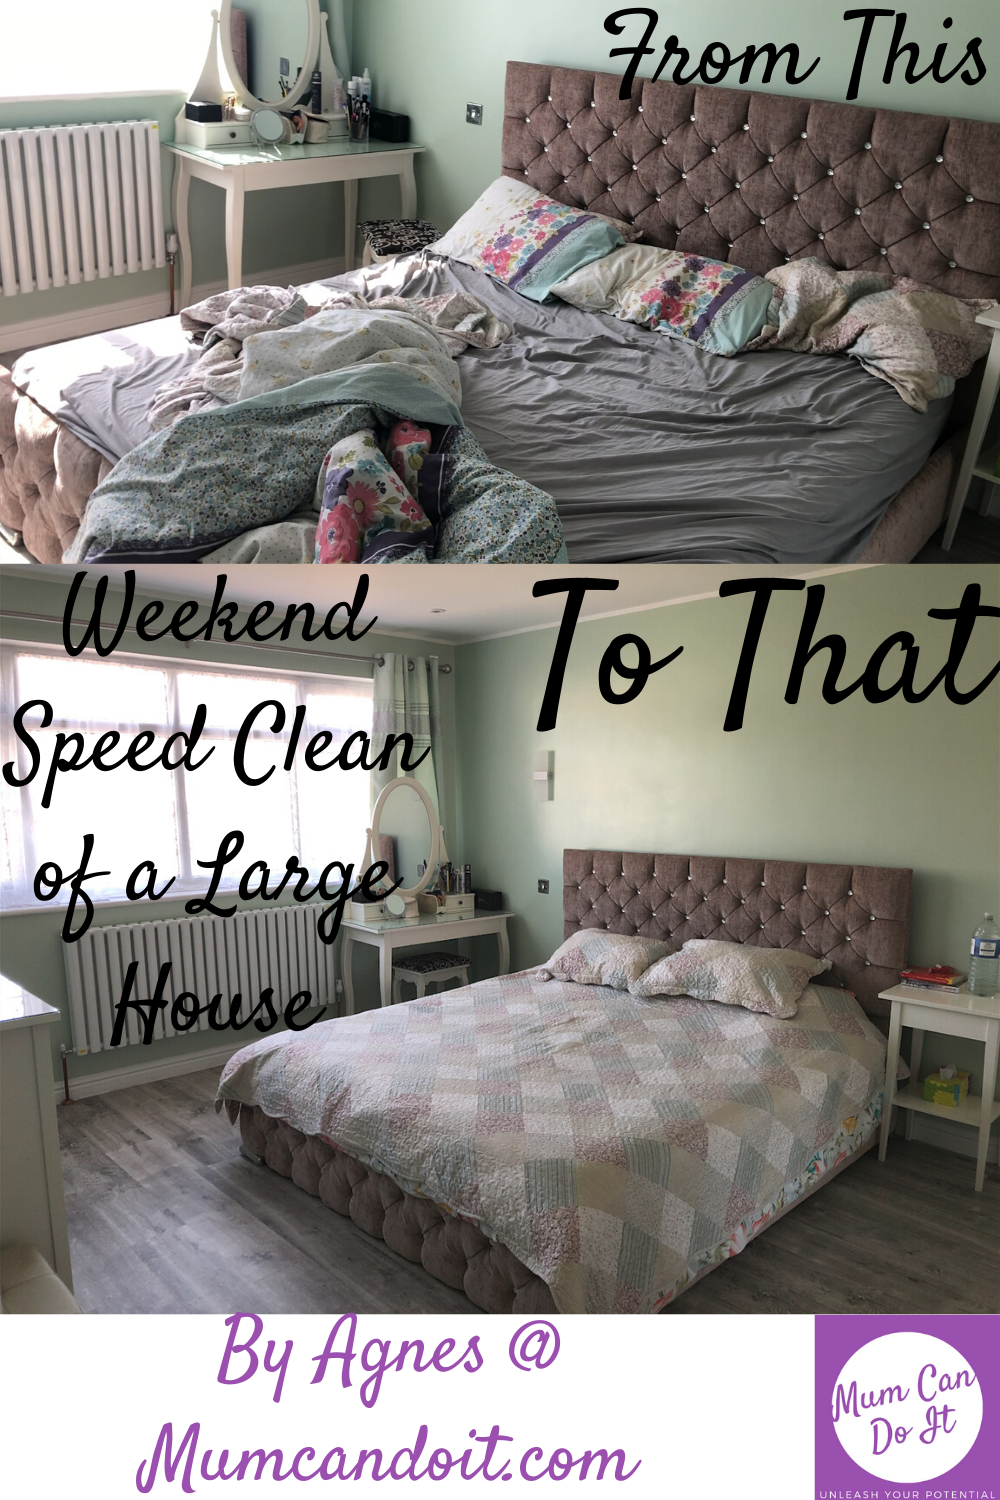 I have 4 bedroom house and it is plenty to clean and to stay on top of so a lot of things I have to just make sure I keep up with otherwise it would just be impossible to manage. #speedclean #keepitclean #myhouse